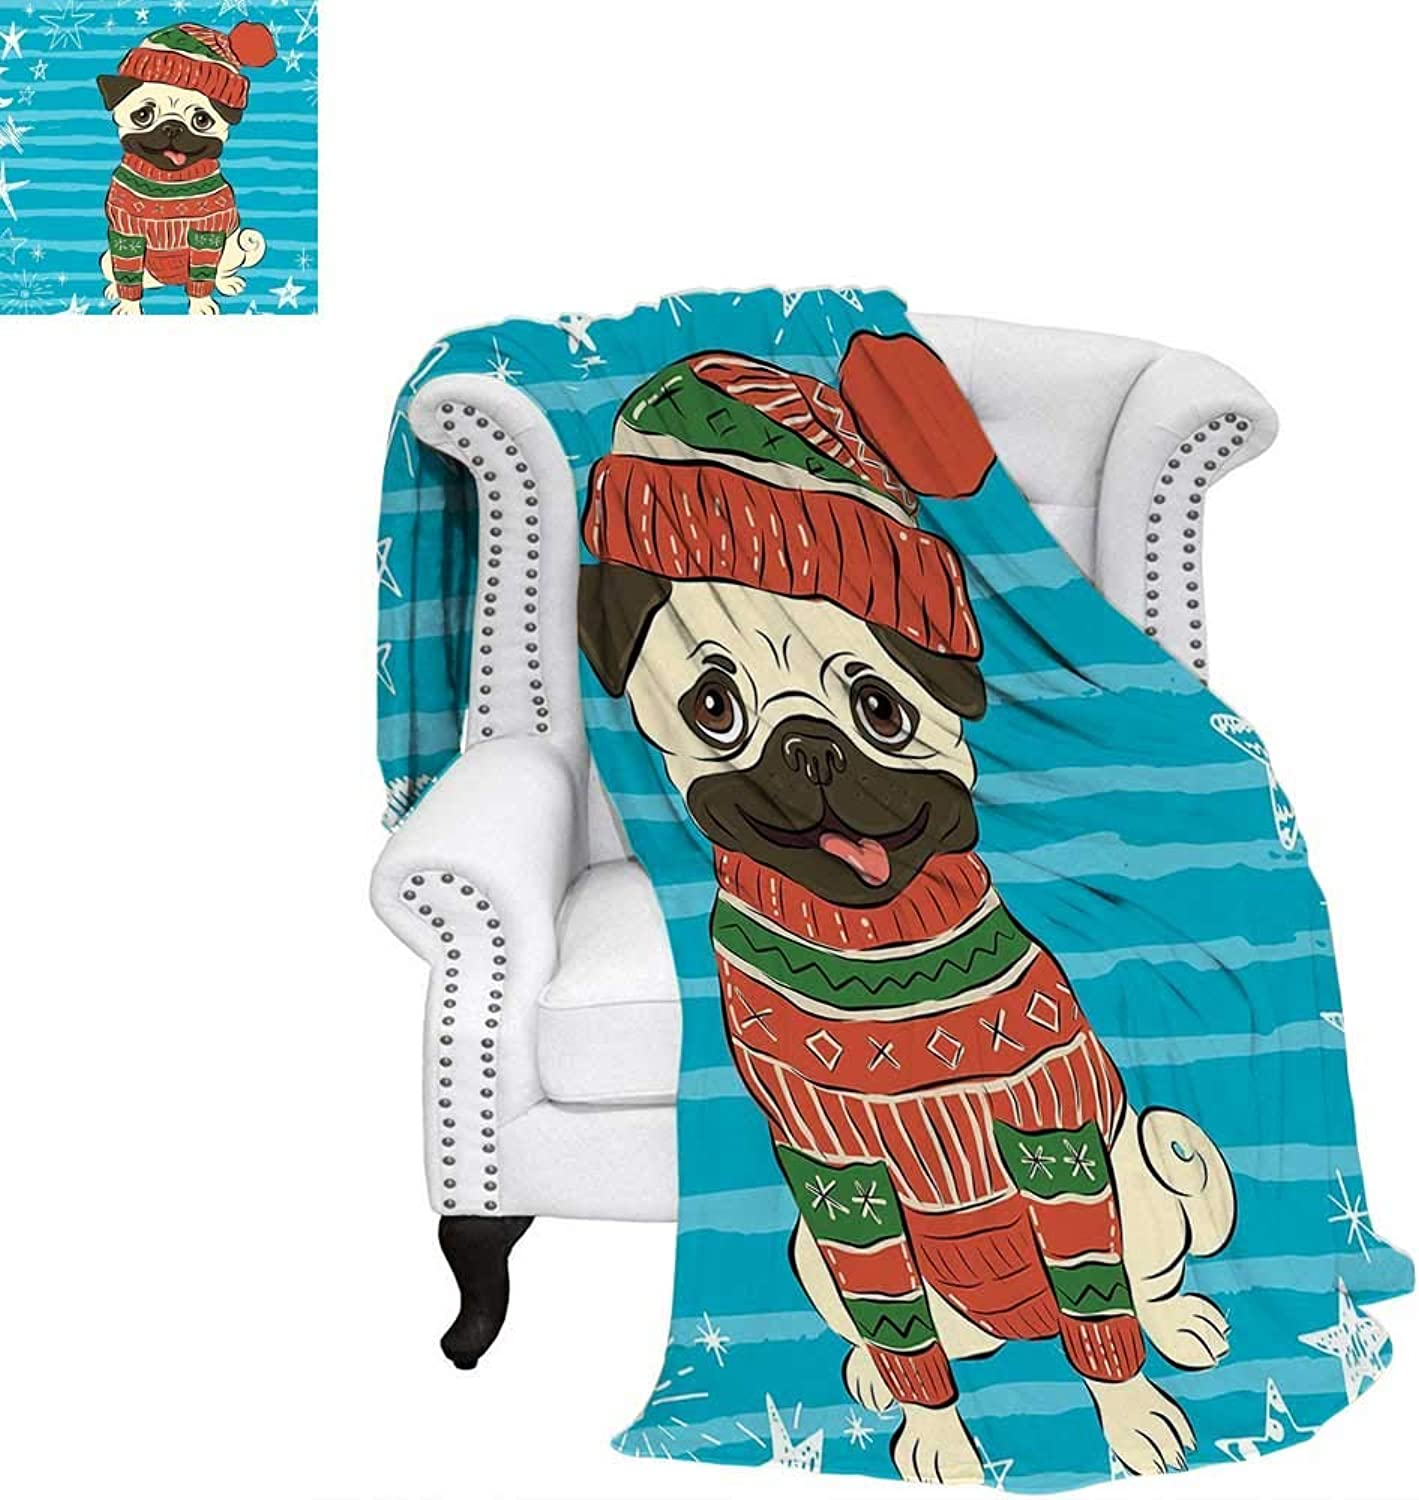 CHASOEA Pug Velvet Plush Throw Blanket Happy Dog with Winter Clothes Vibrant Stripped Background with White Stars Moon Weave Pattern Blanket 60 x50  Emerald bluee Red